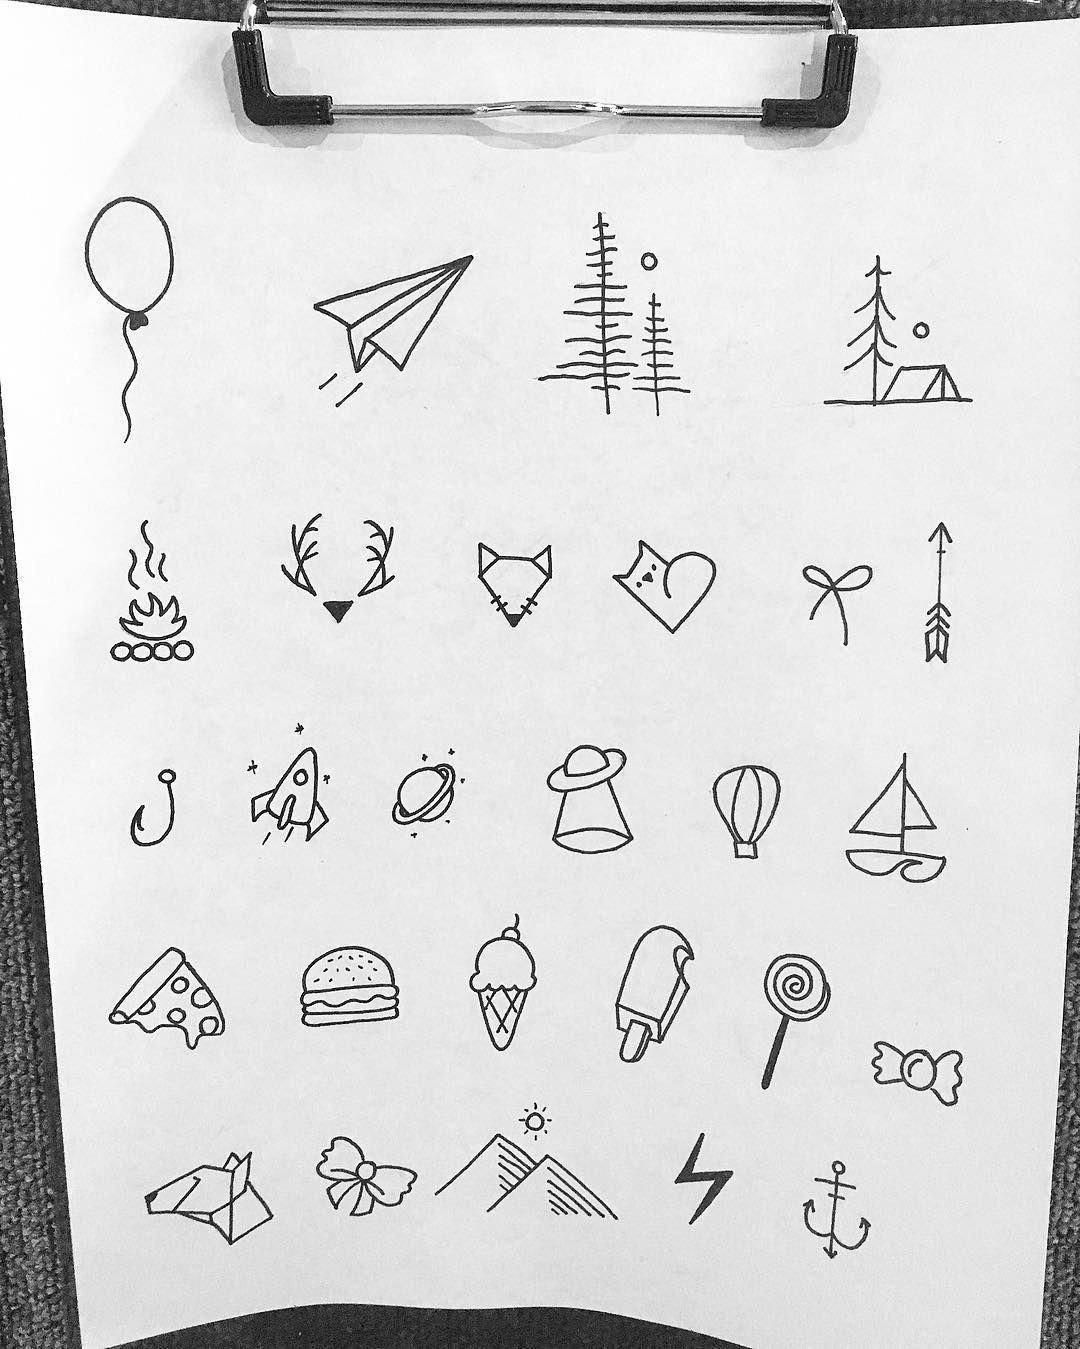 Pin By Paola Esperanza Limachi On D R A W I N G S Minimalist Tattoo Meaning Doodle Tattoo Bullet Journal Doodles